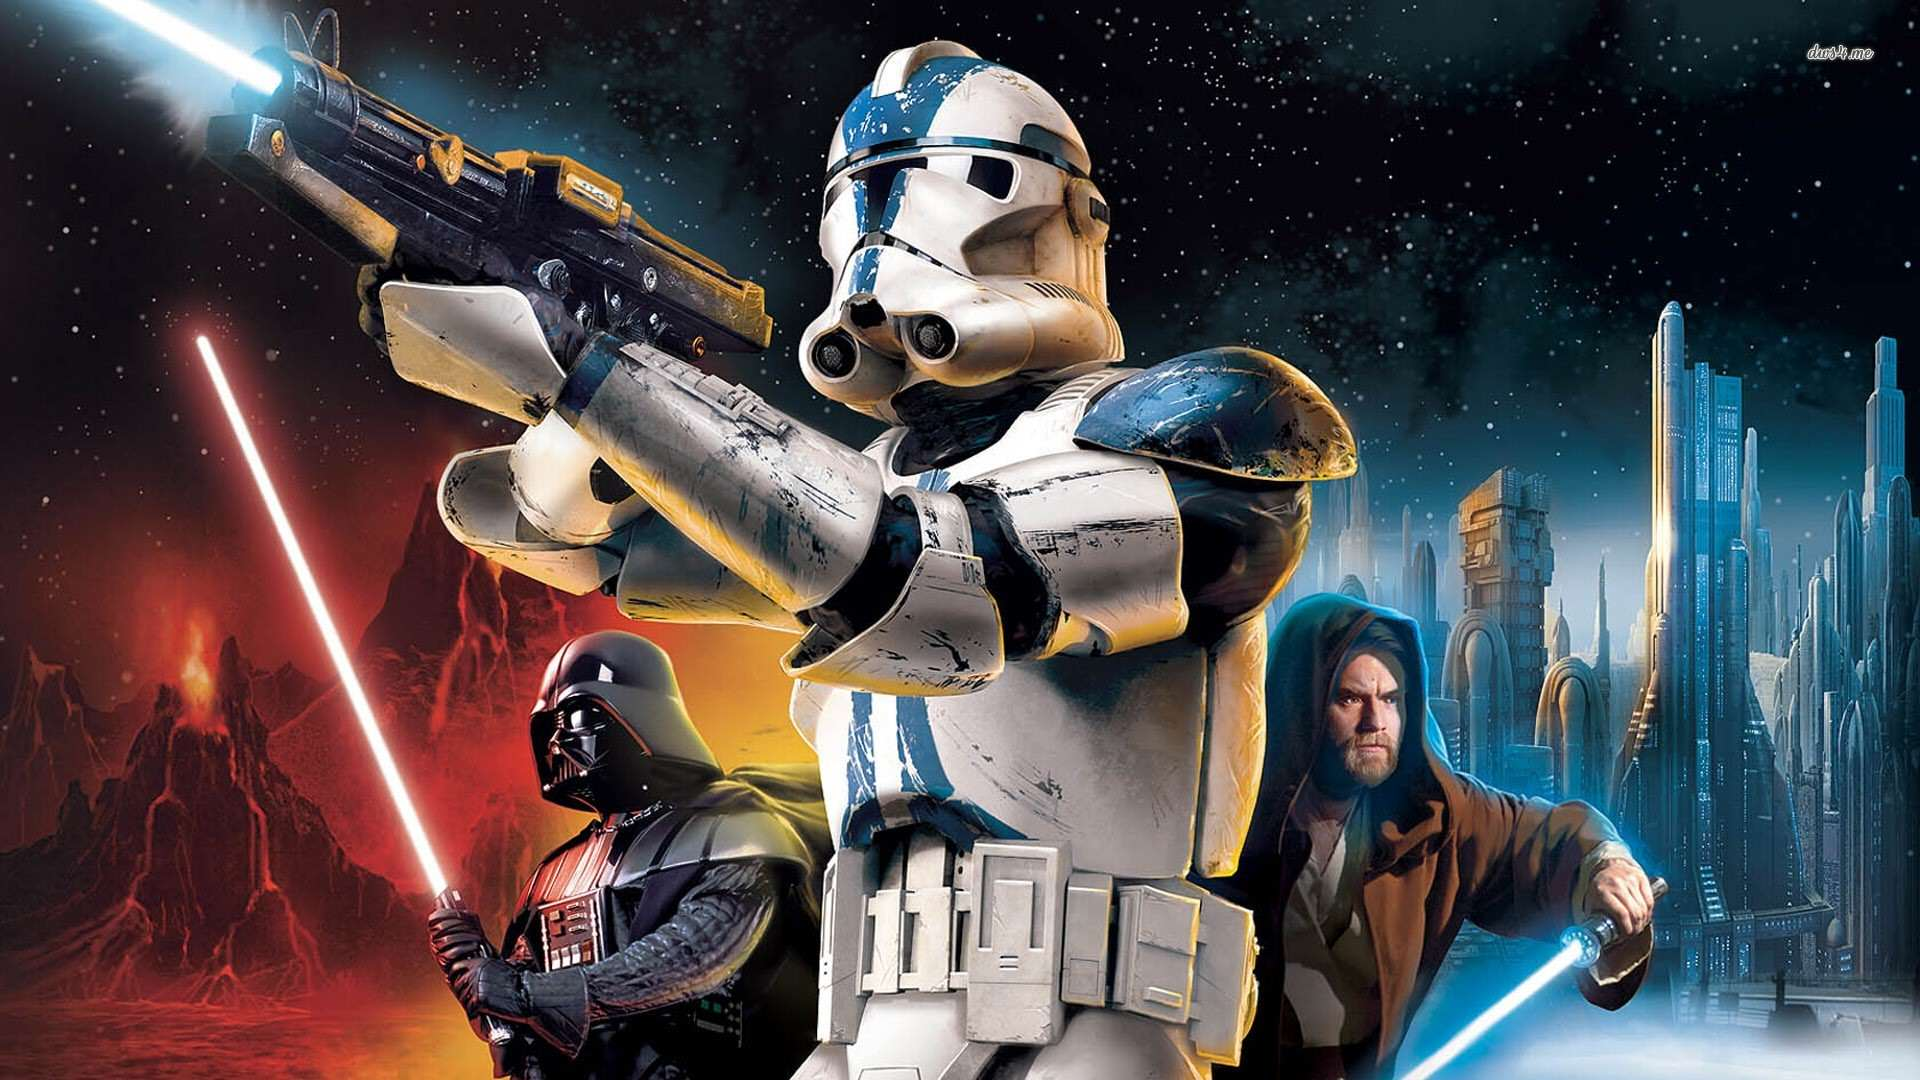 star wars battlefront ii 1920x1080 game wallpaper Battlefront 3 Fan Remake Continues, But Theres A New Catch